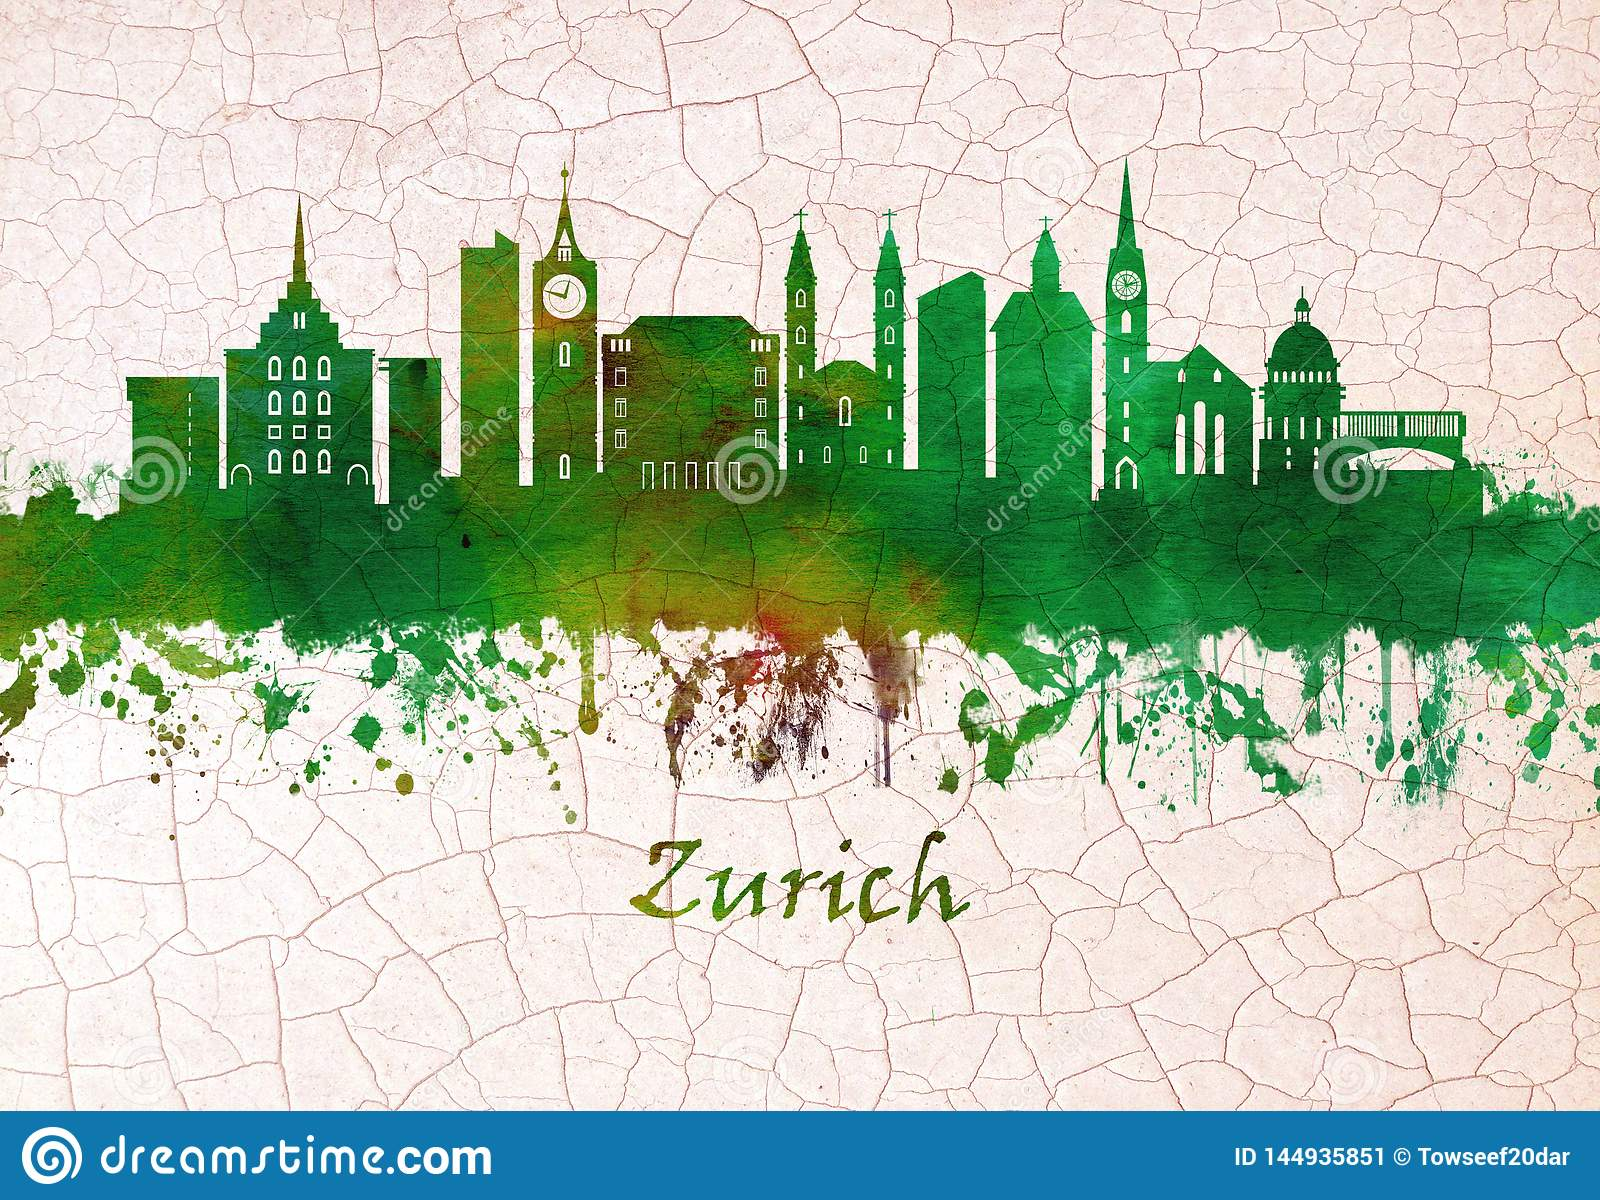 Zurich Switzerland skyline